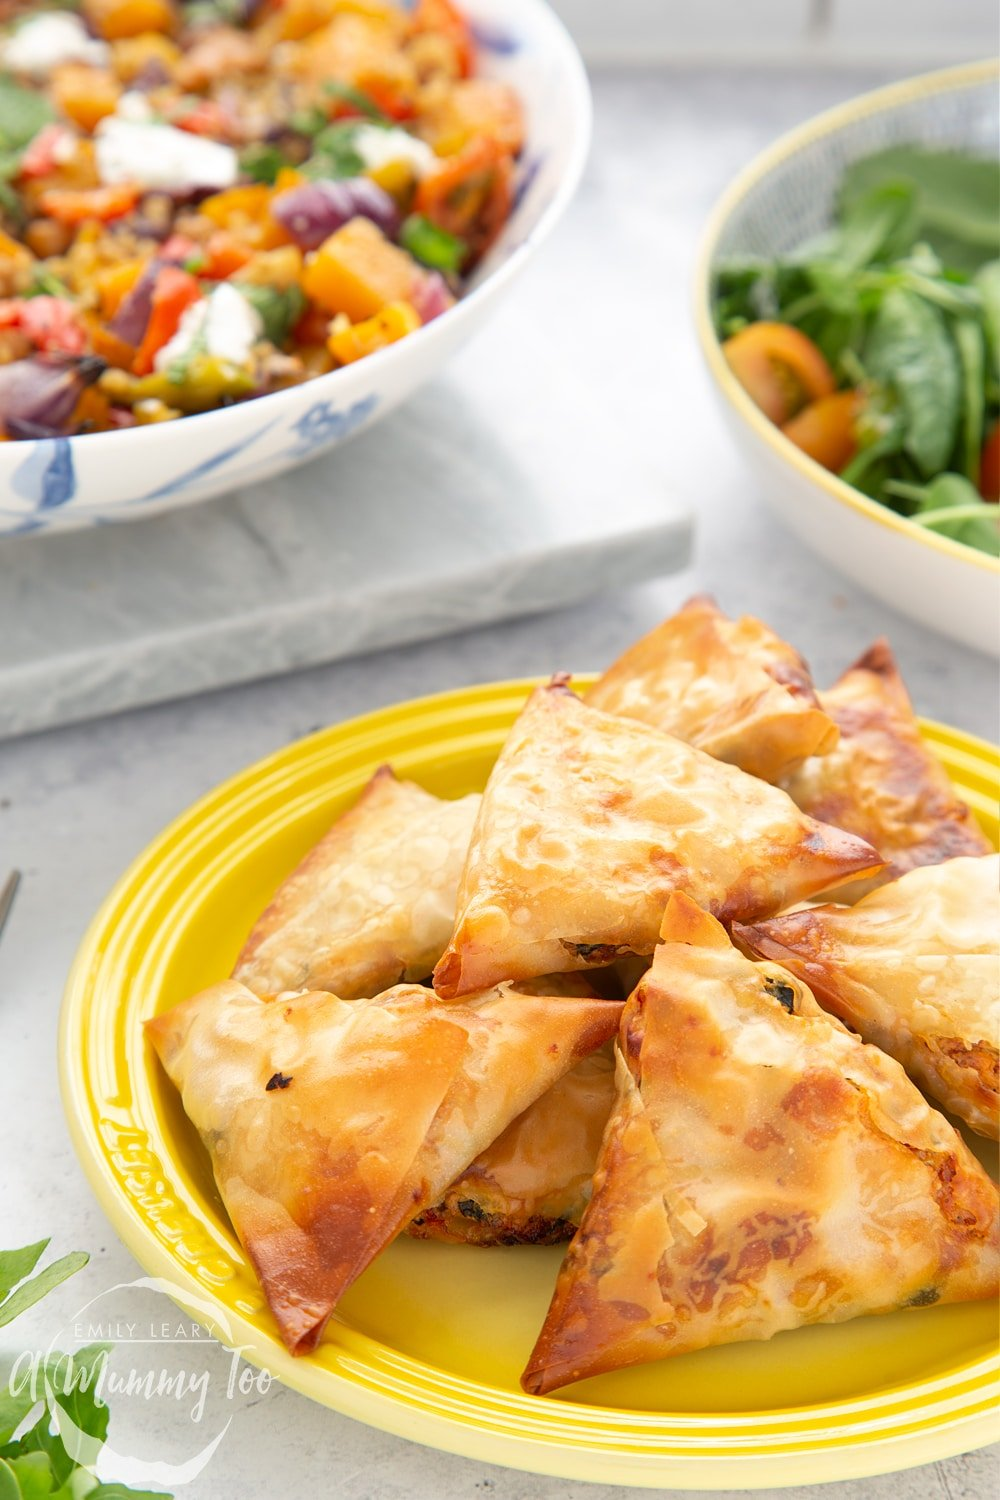 These olive and sun-dried tomato filo parcels taste delicious hot or cold, served with a salad